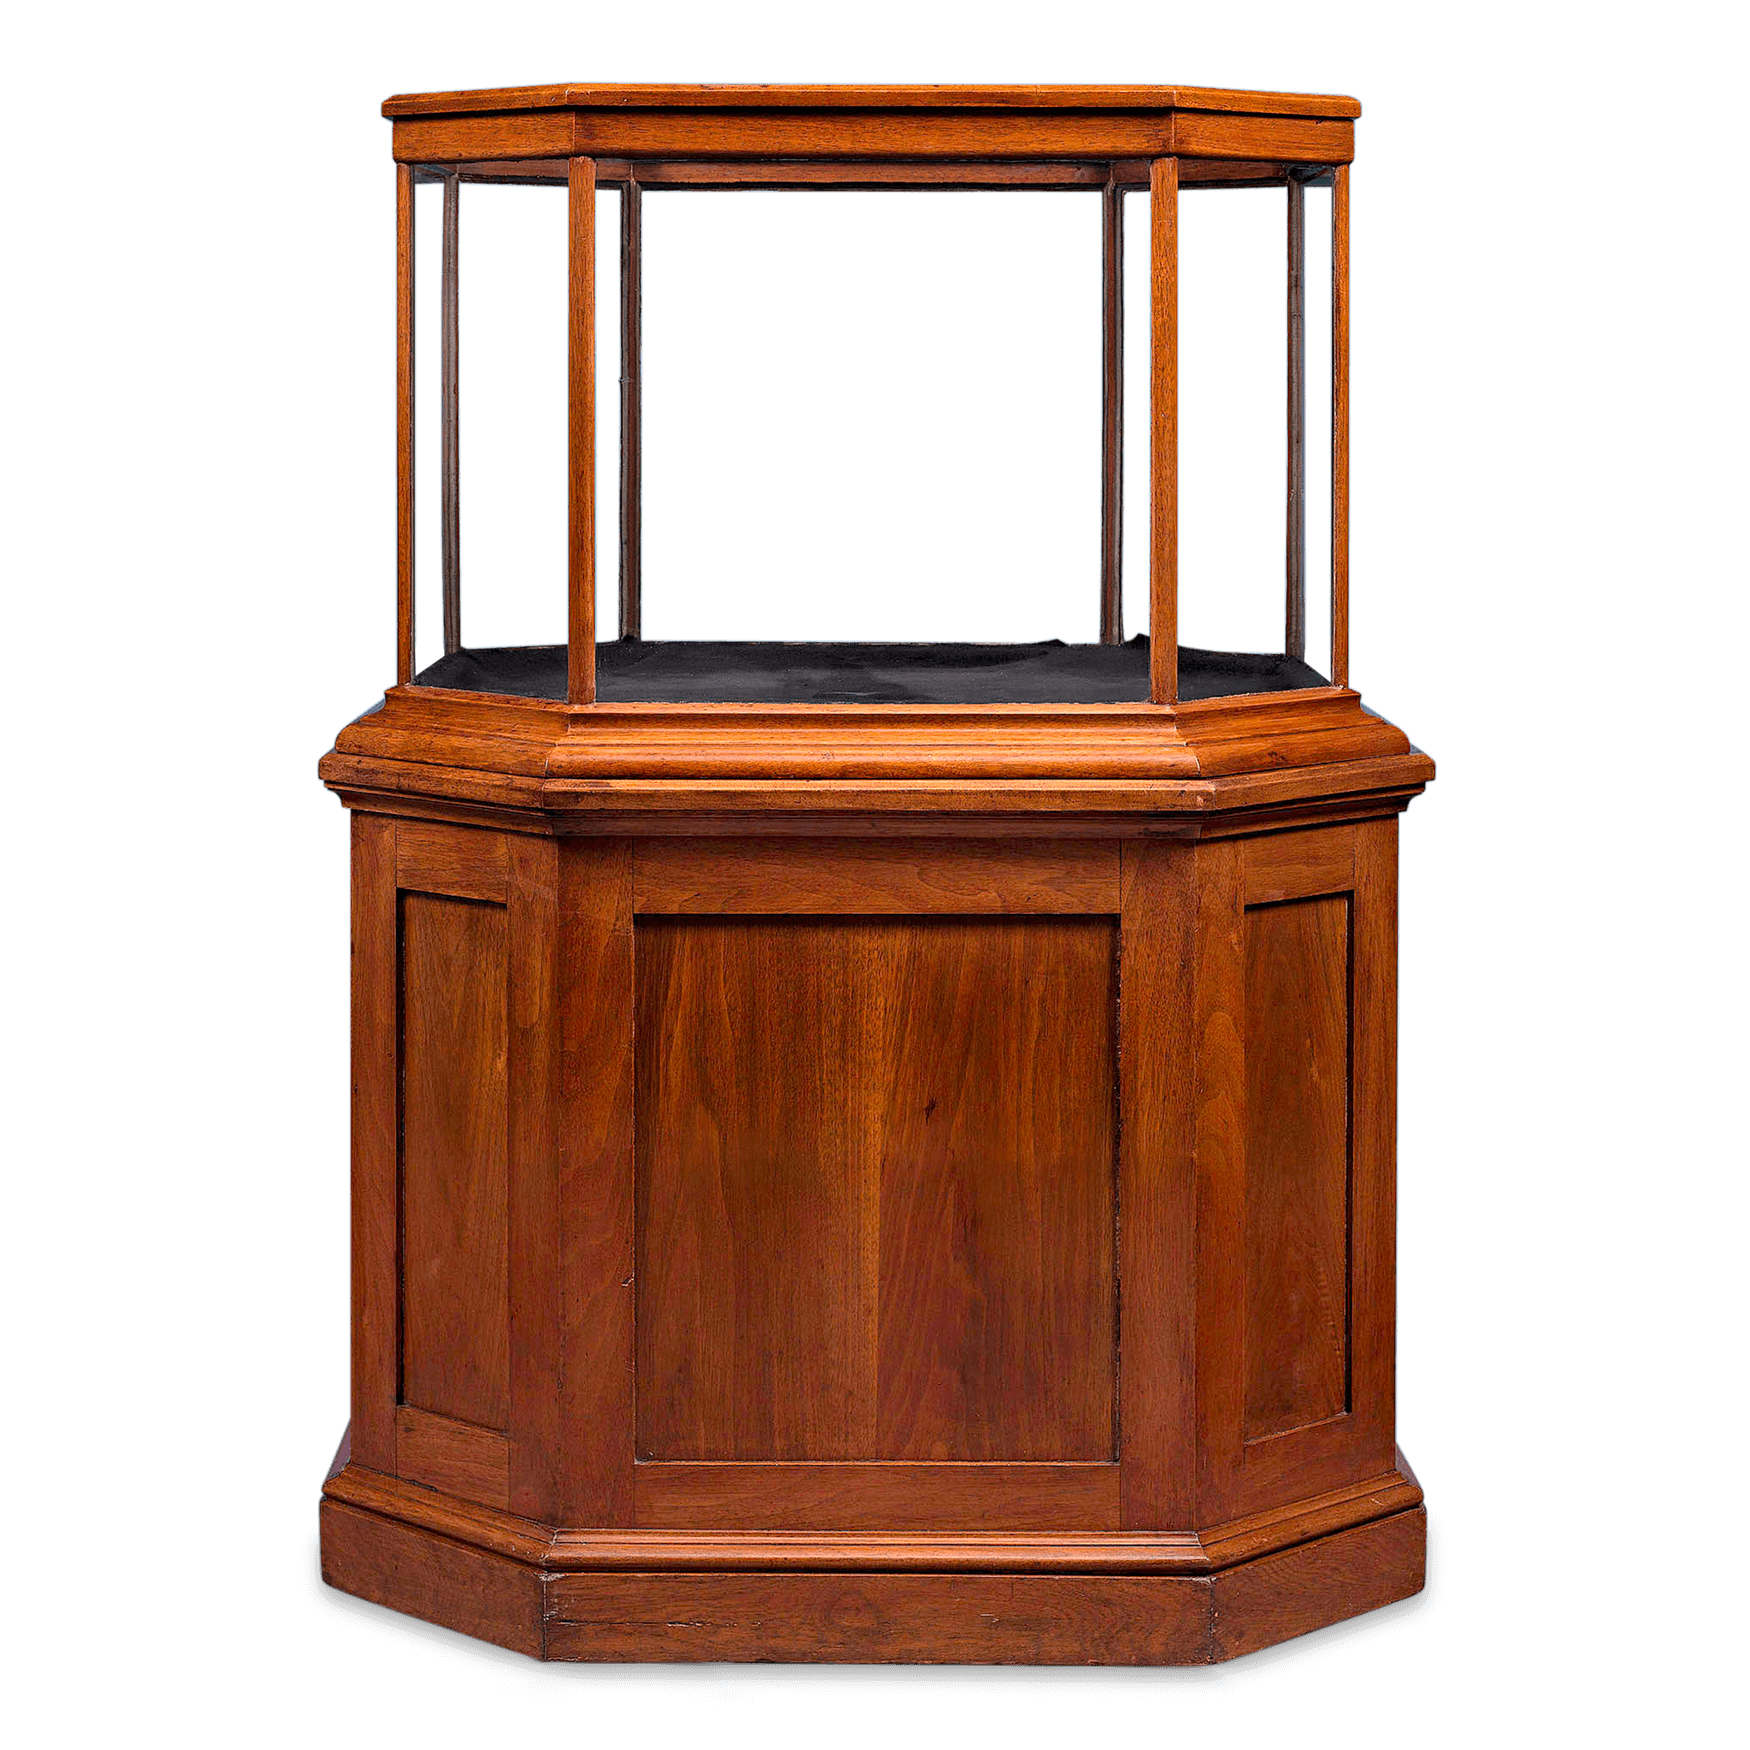 Octagonal Cane Display Case.